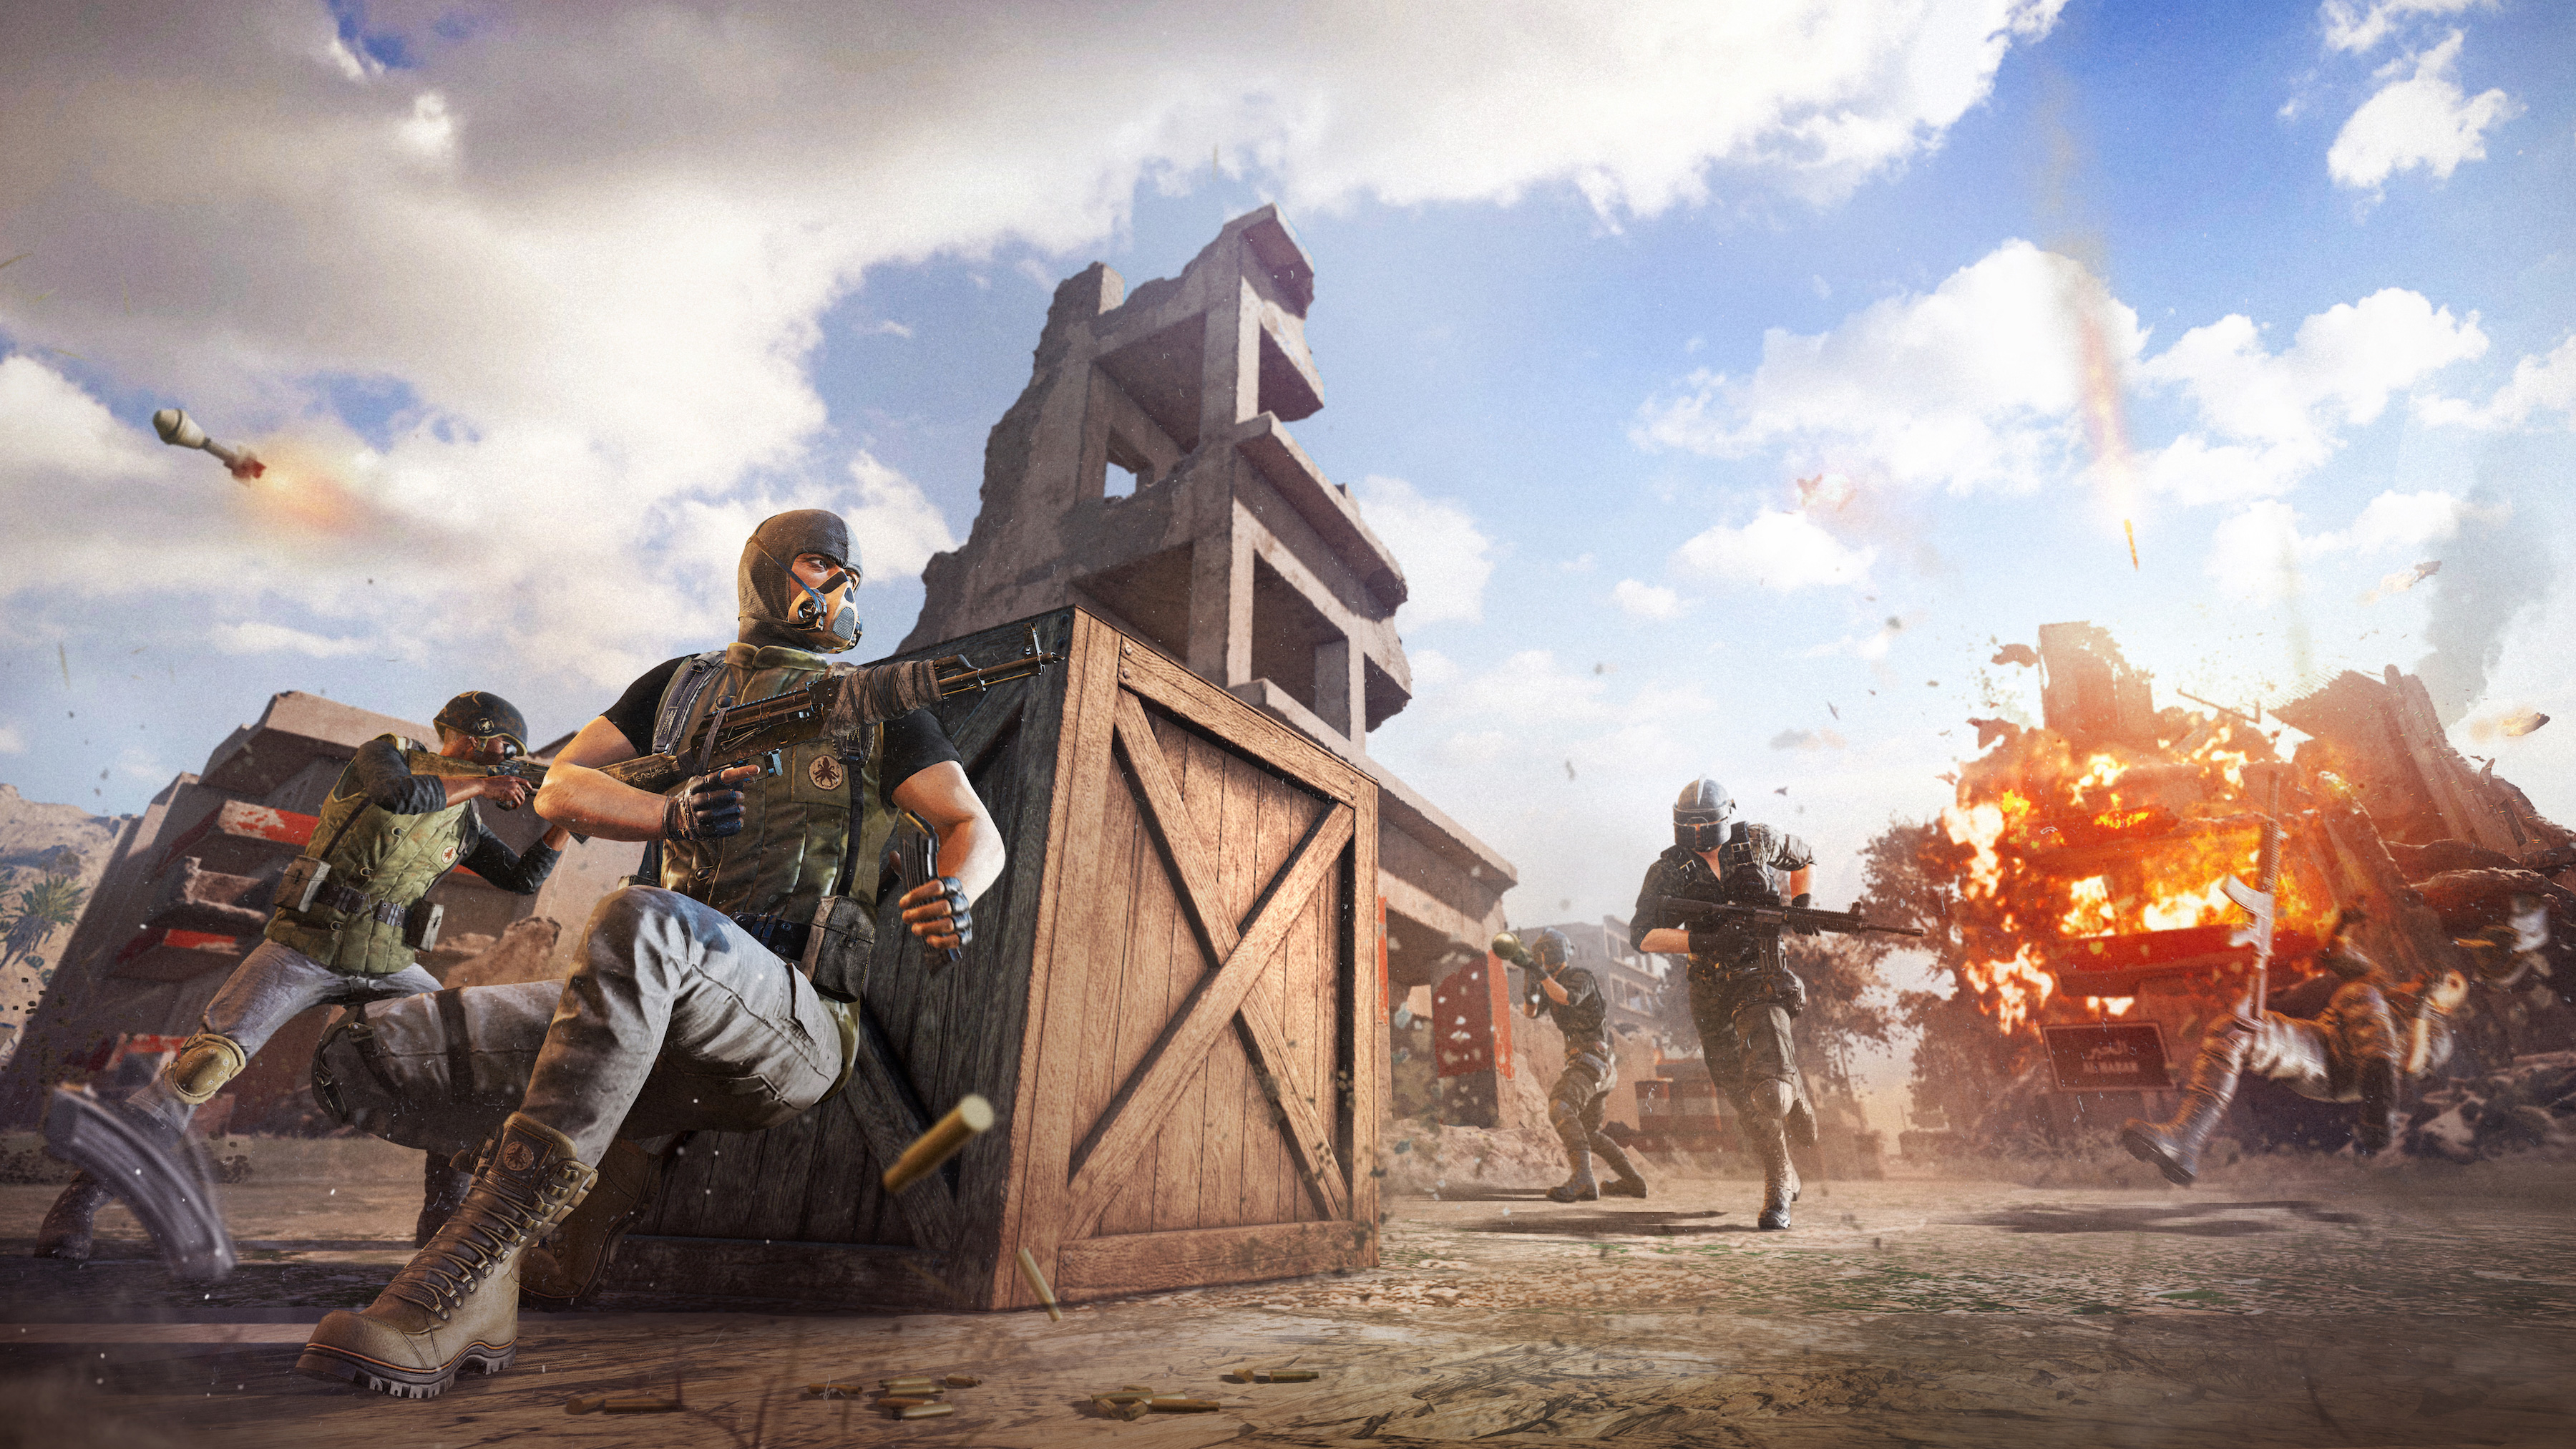 Pubg Season 6 Wallpaper Hd Games 4k Wallpapers Images Photos And Background 468 pubg wallpapers (4k) 3840x2160 resolution. pubg season 6 wallpaper hd games 4k